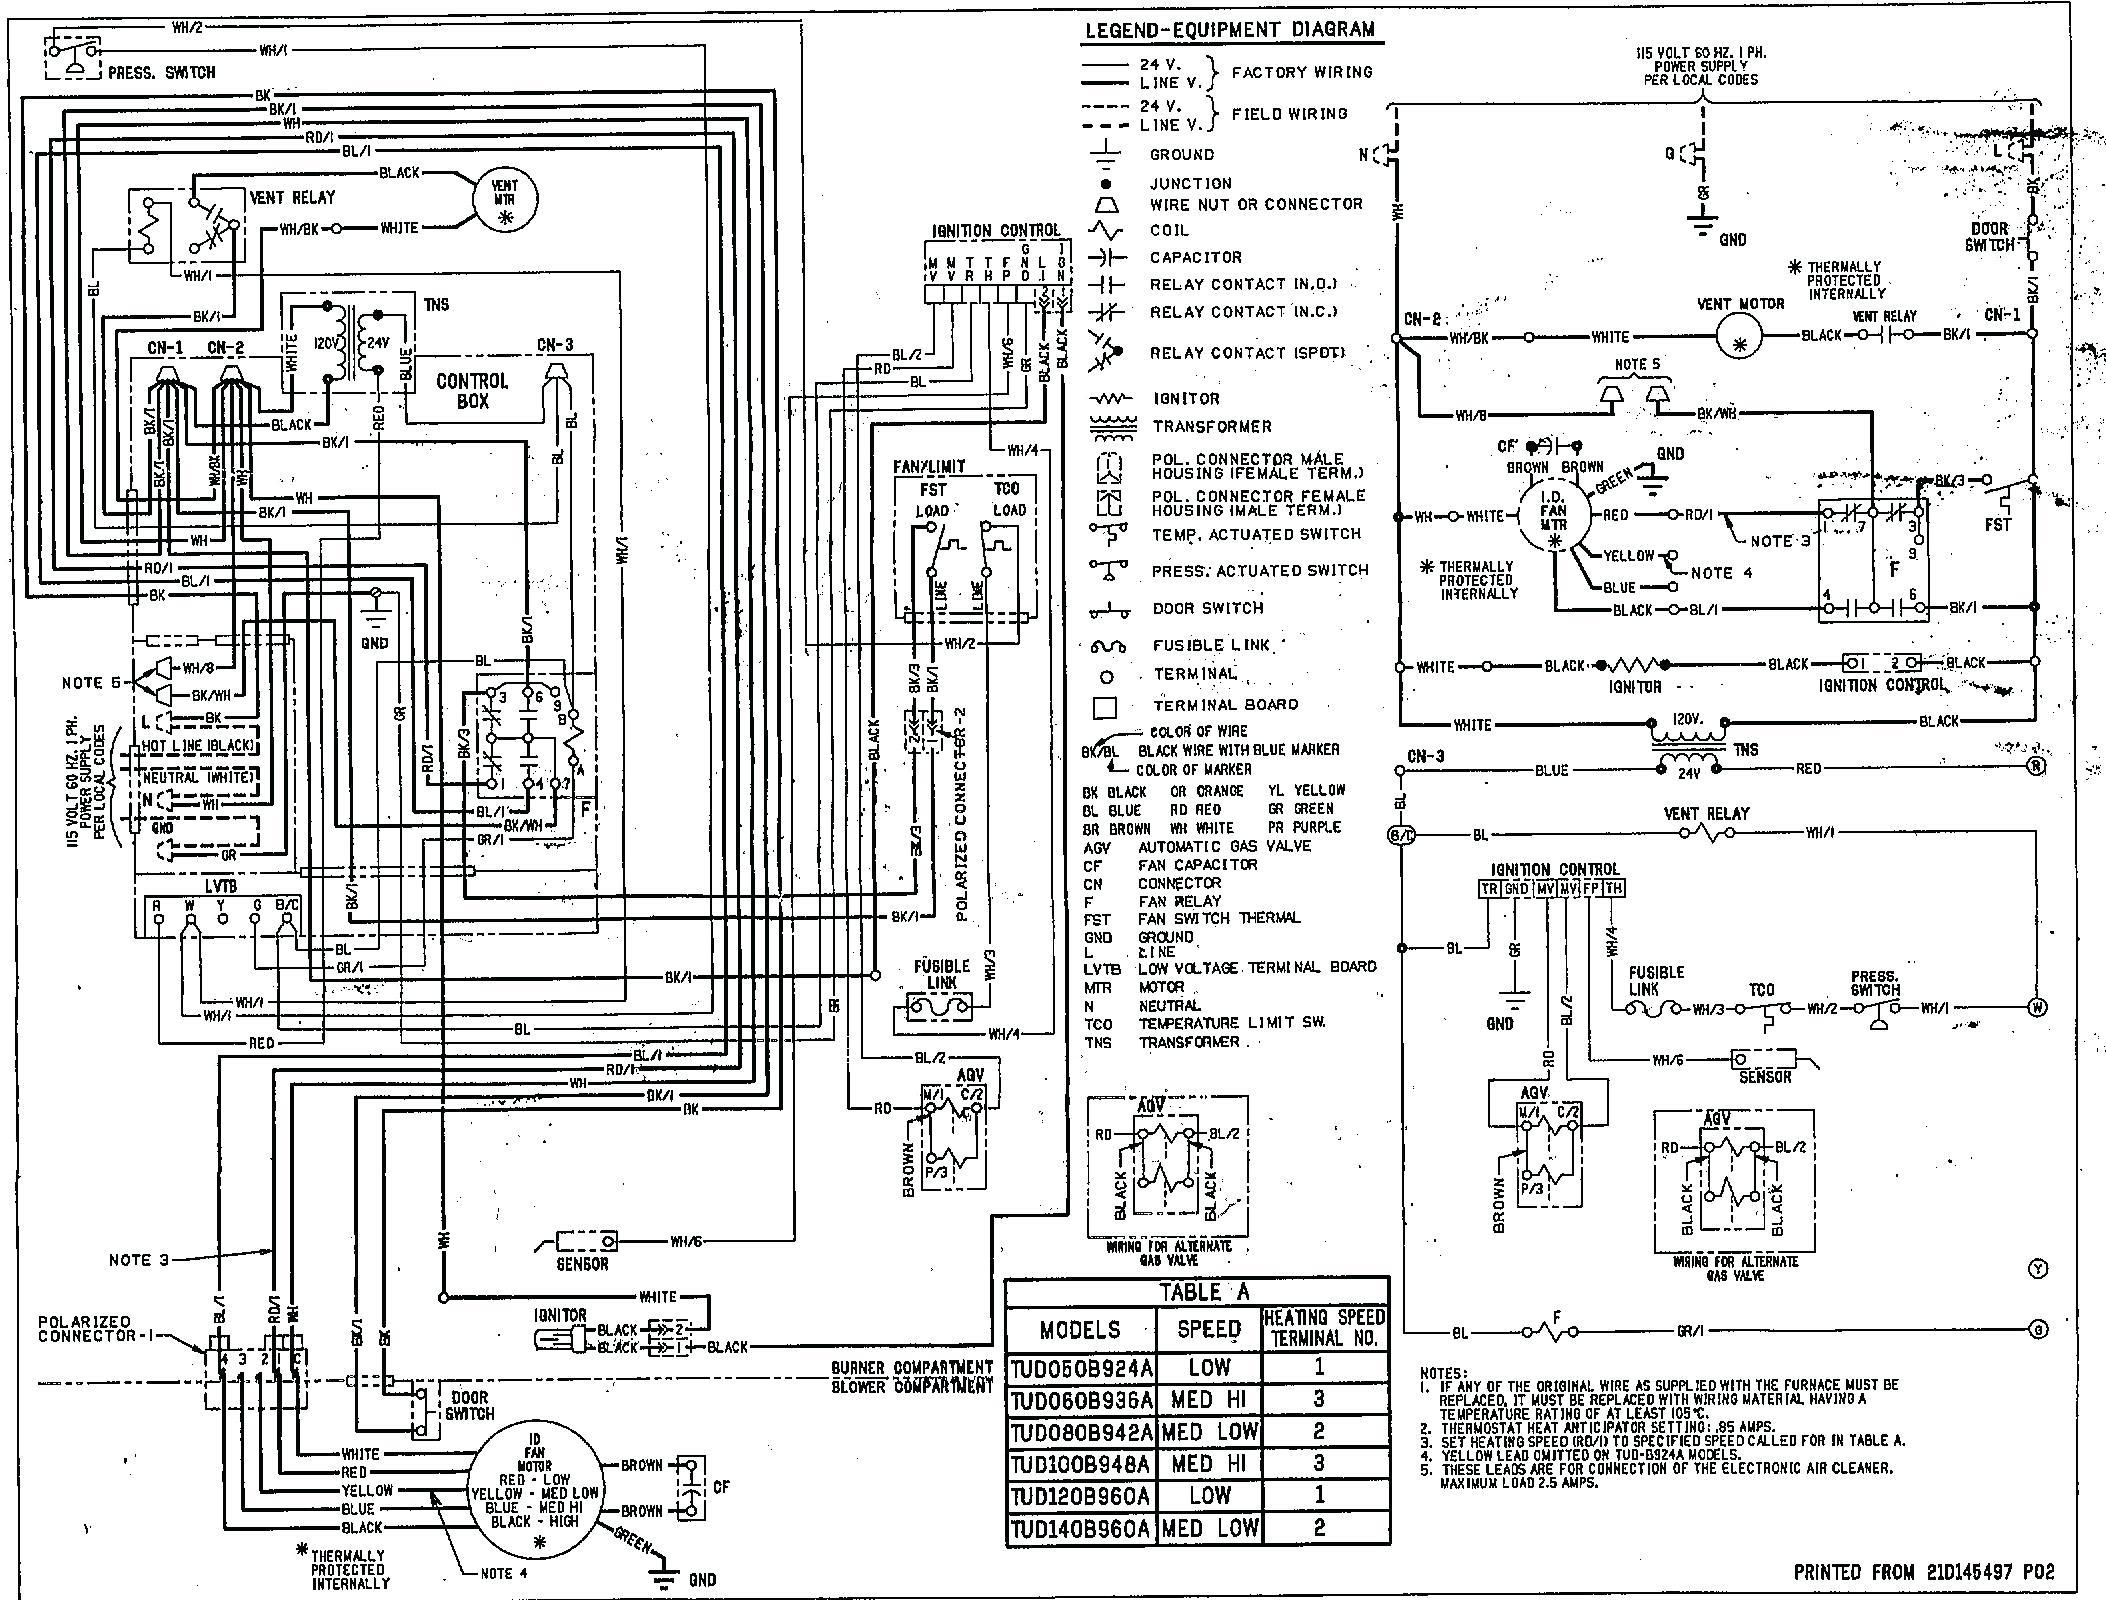 furnace control board wiring diagram - wireless focuspro thermostat trane  xl80 furnace wiring diagram i have